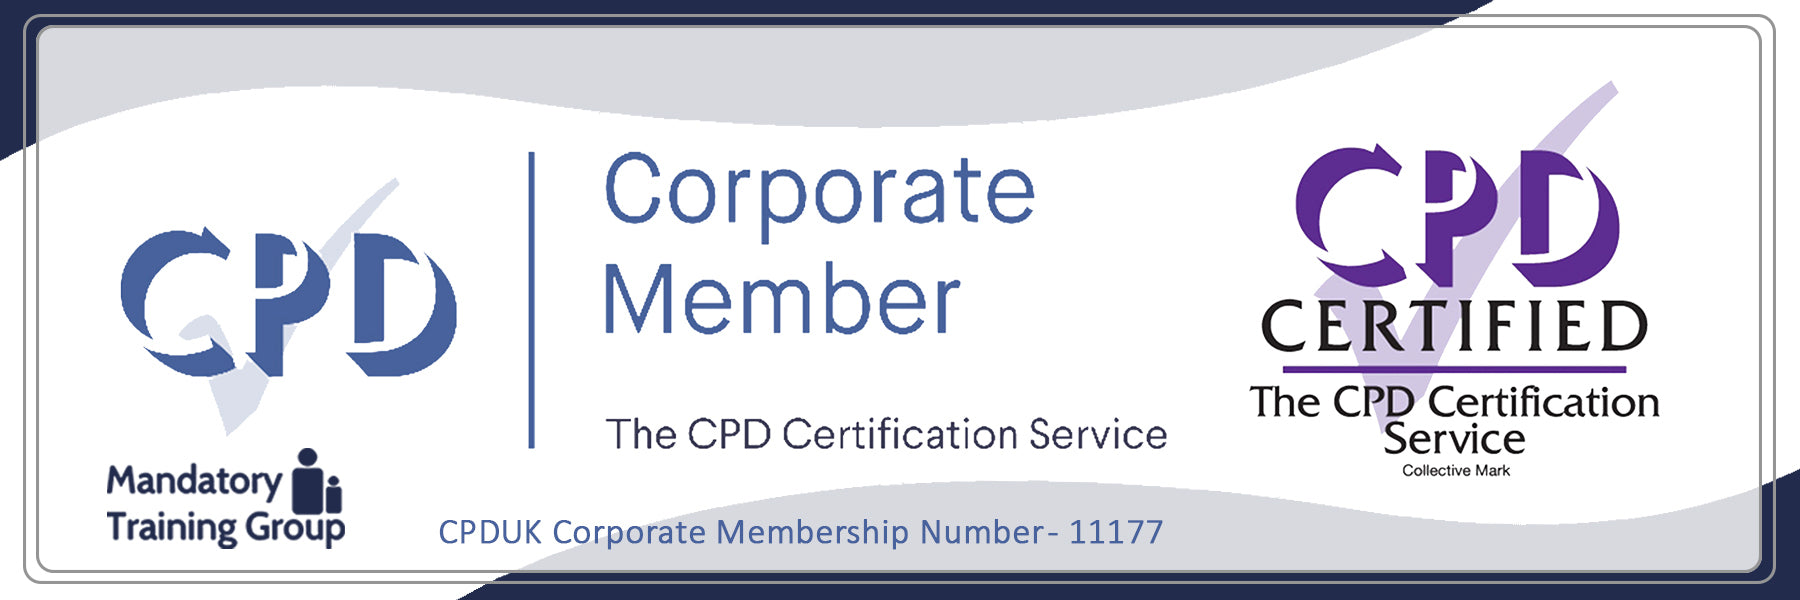 Personal Development Plan - Courier Services Training Package - The Mandatory Training Group UK -